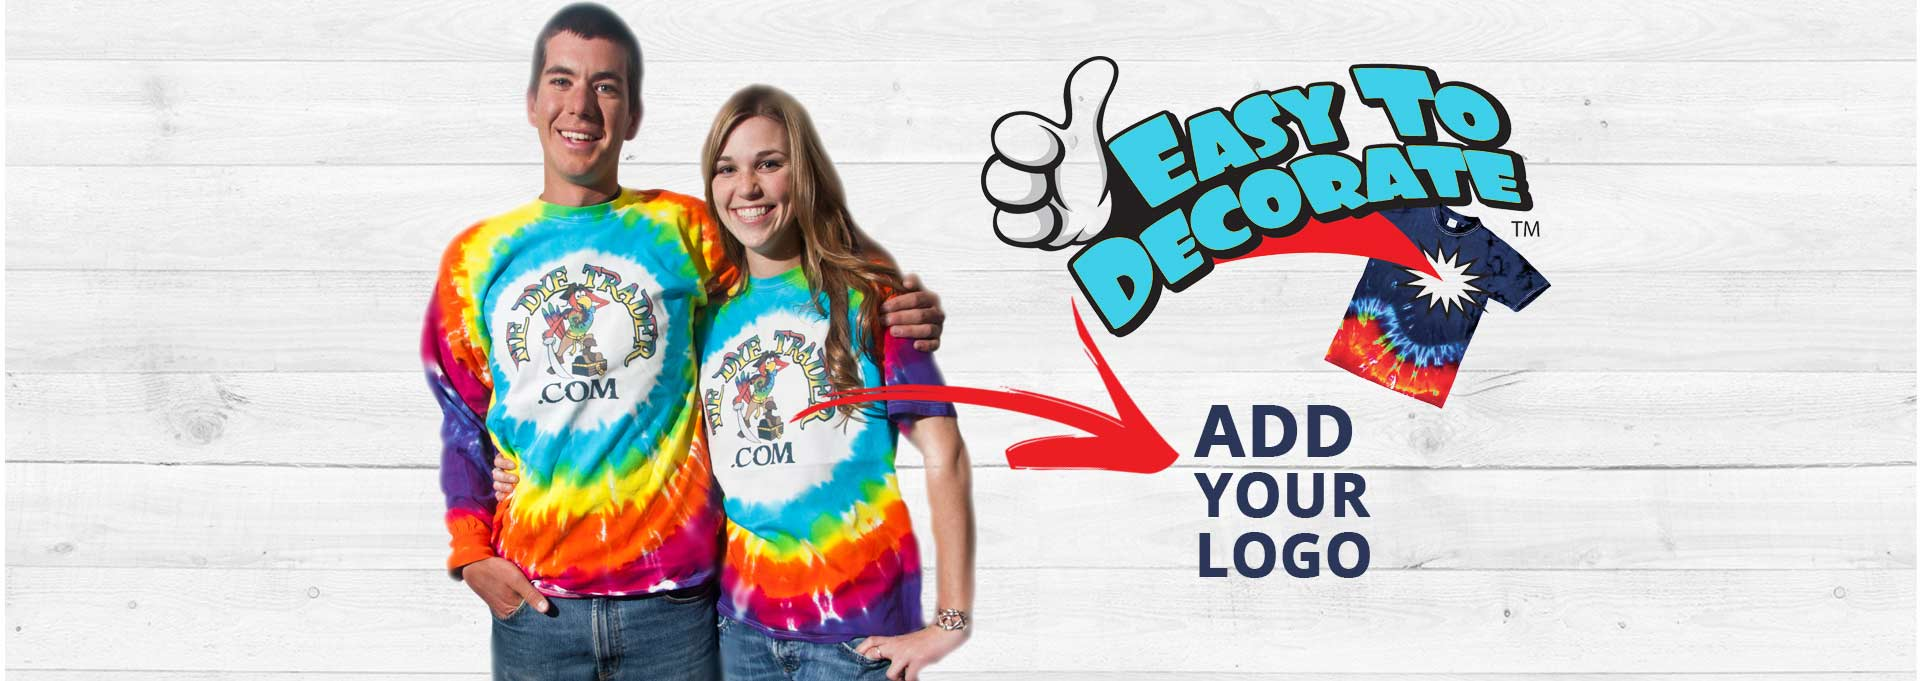 Add your logo to T-Shirt at Tie Dye Wholesaler